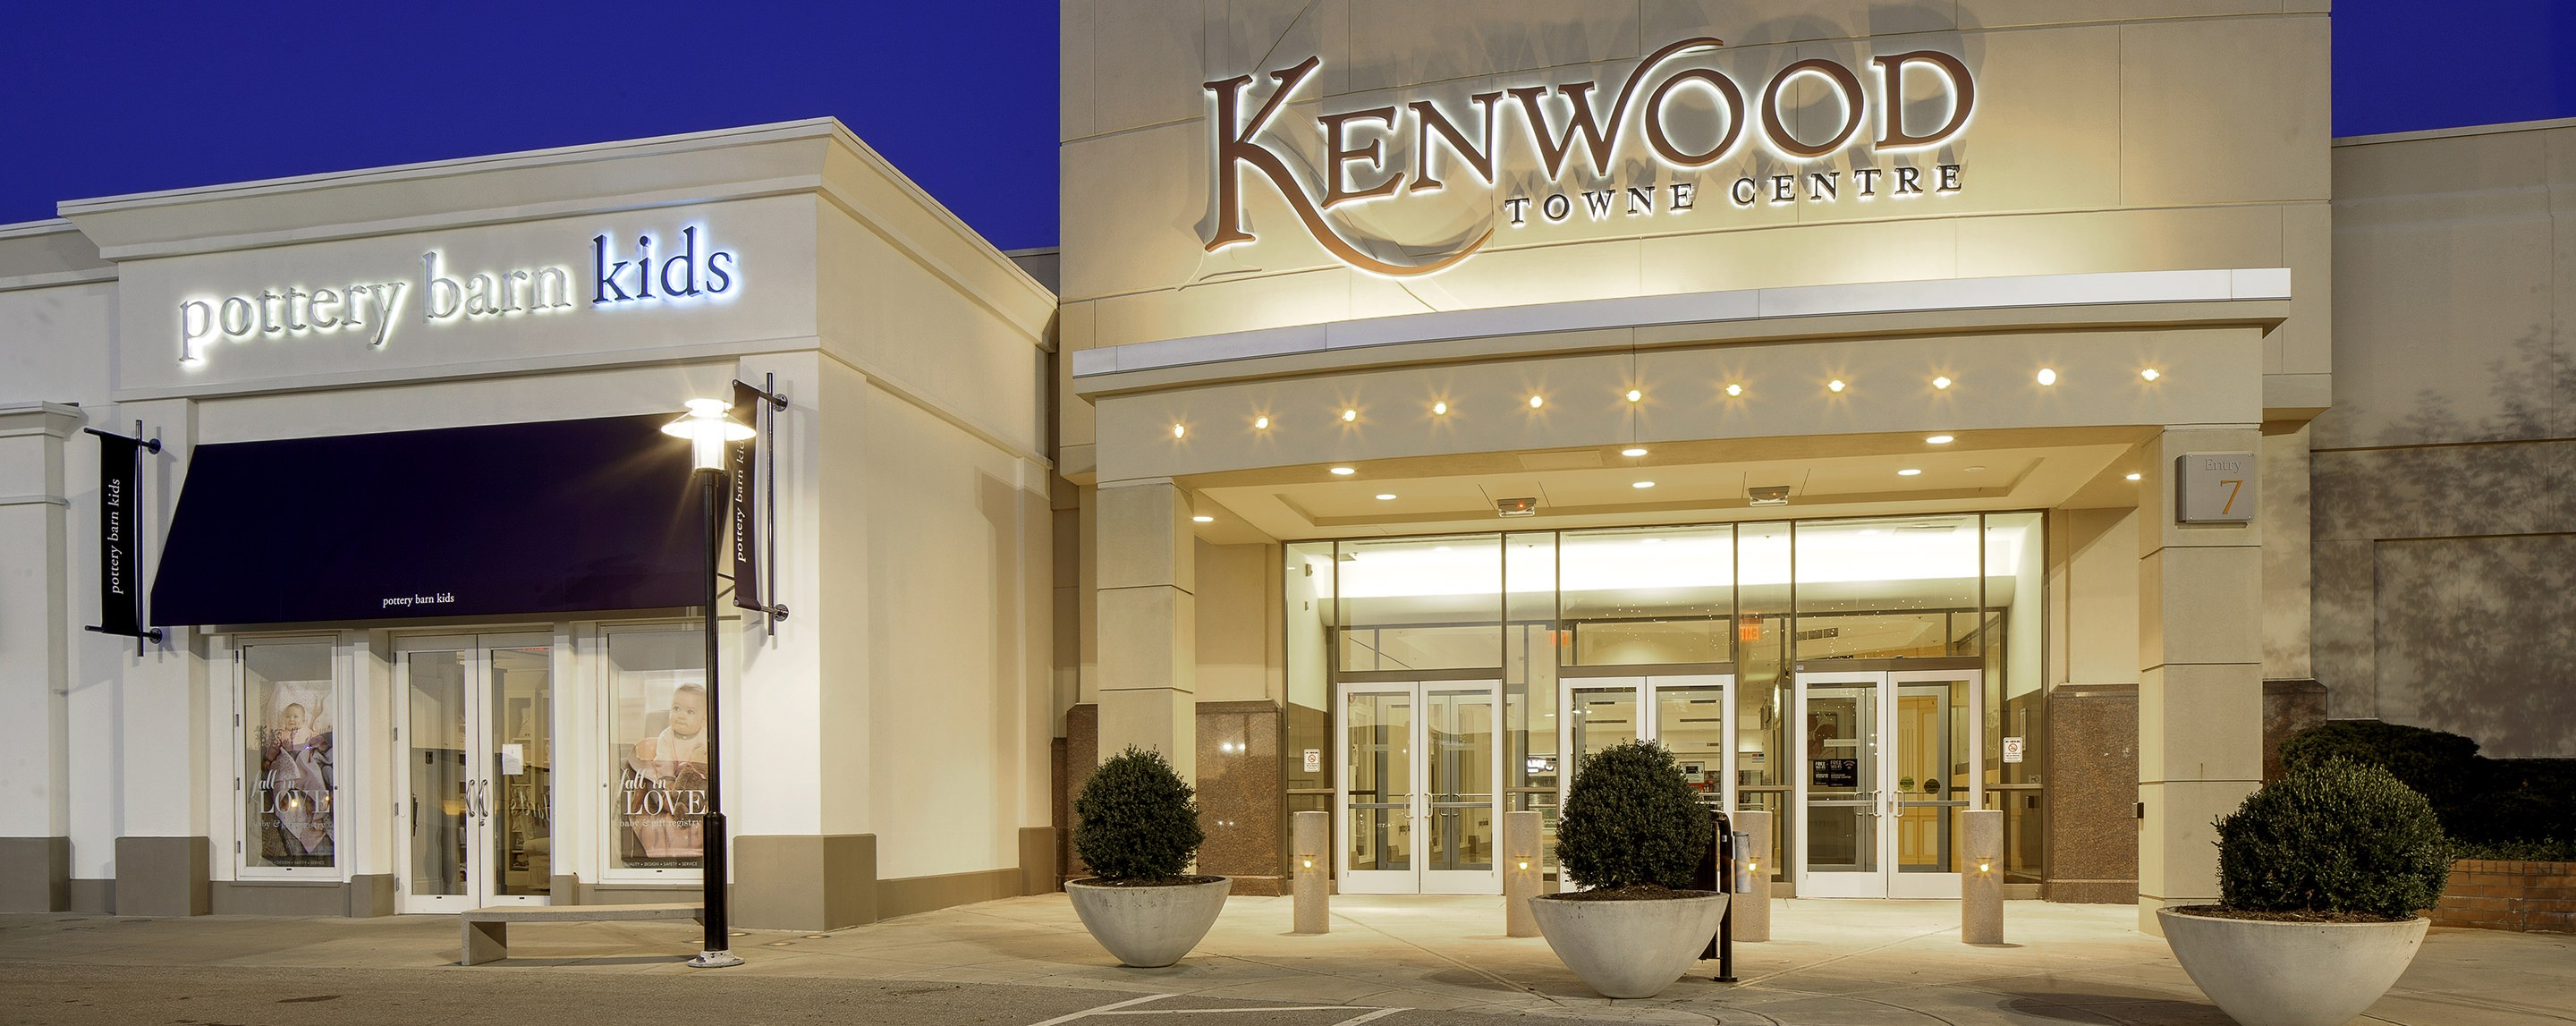 A store front with glass doors with a sign that says Kenwood Towne Centre and a pottery barn kids next door.